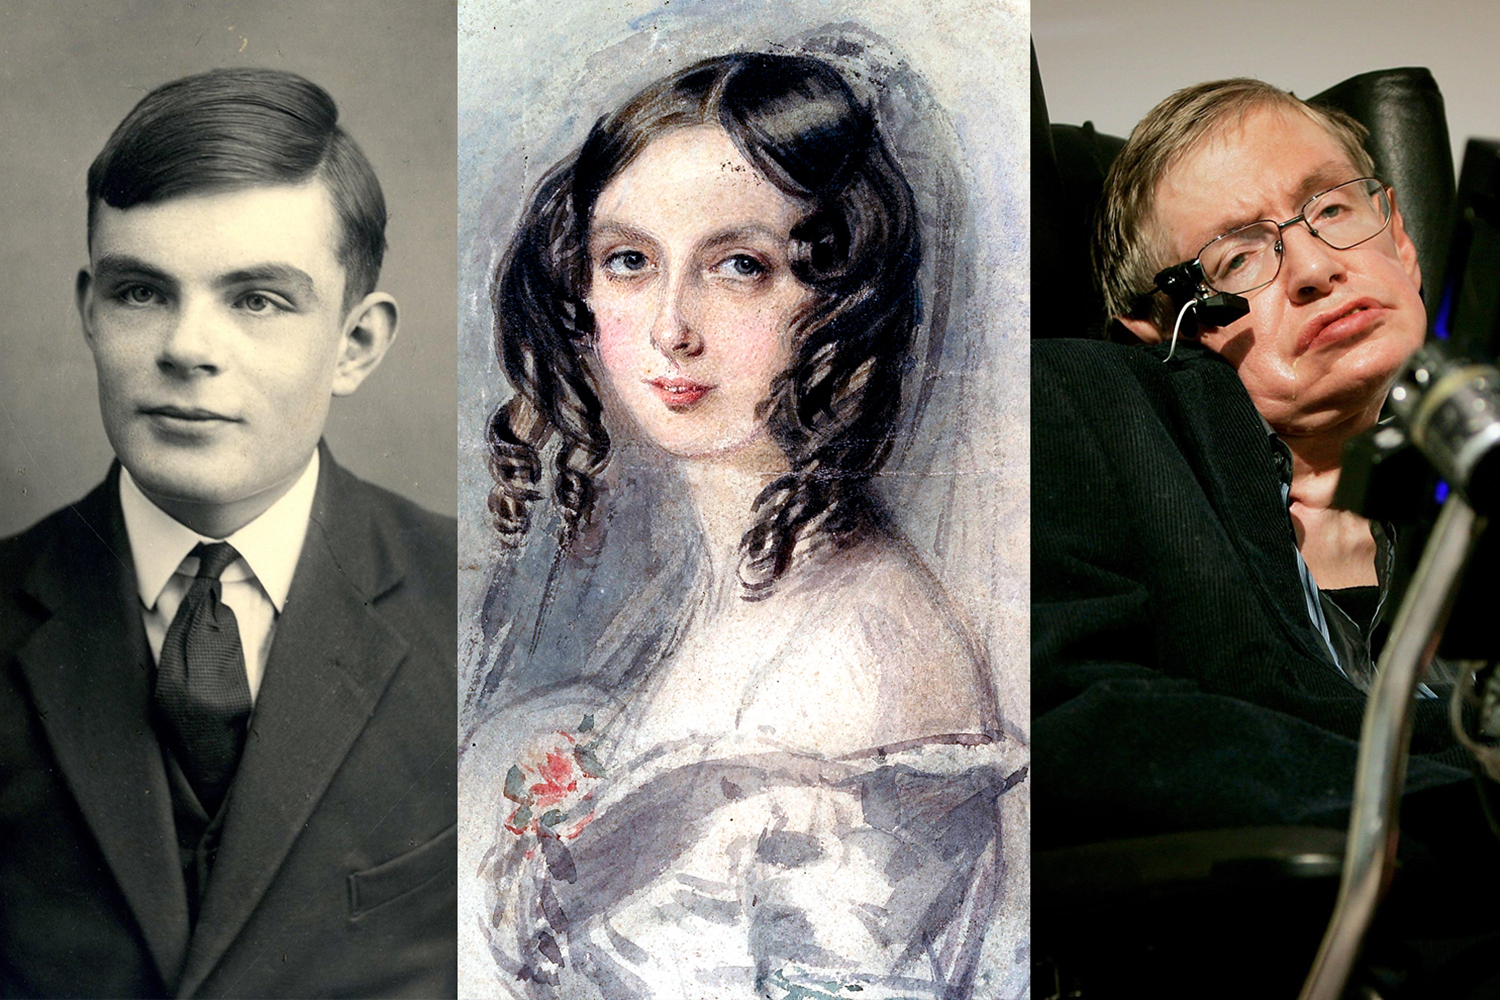 Alan Turing, Ada Lovelace and Stephen Hawking are three of the front runners to be the face of the £50 note